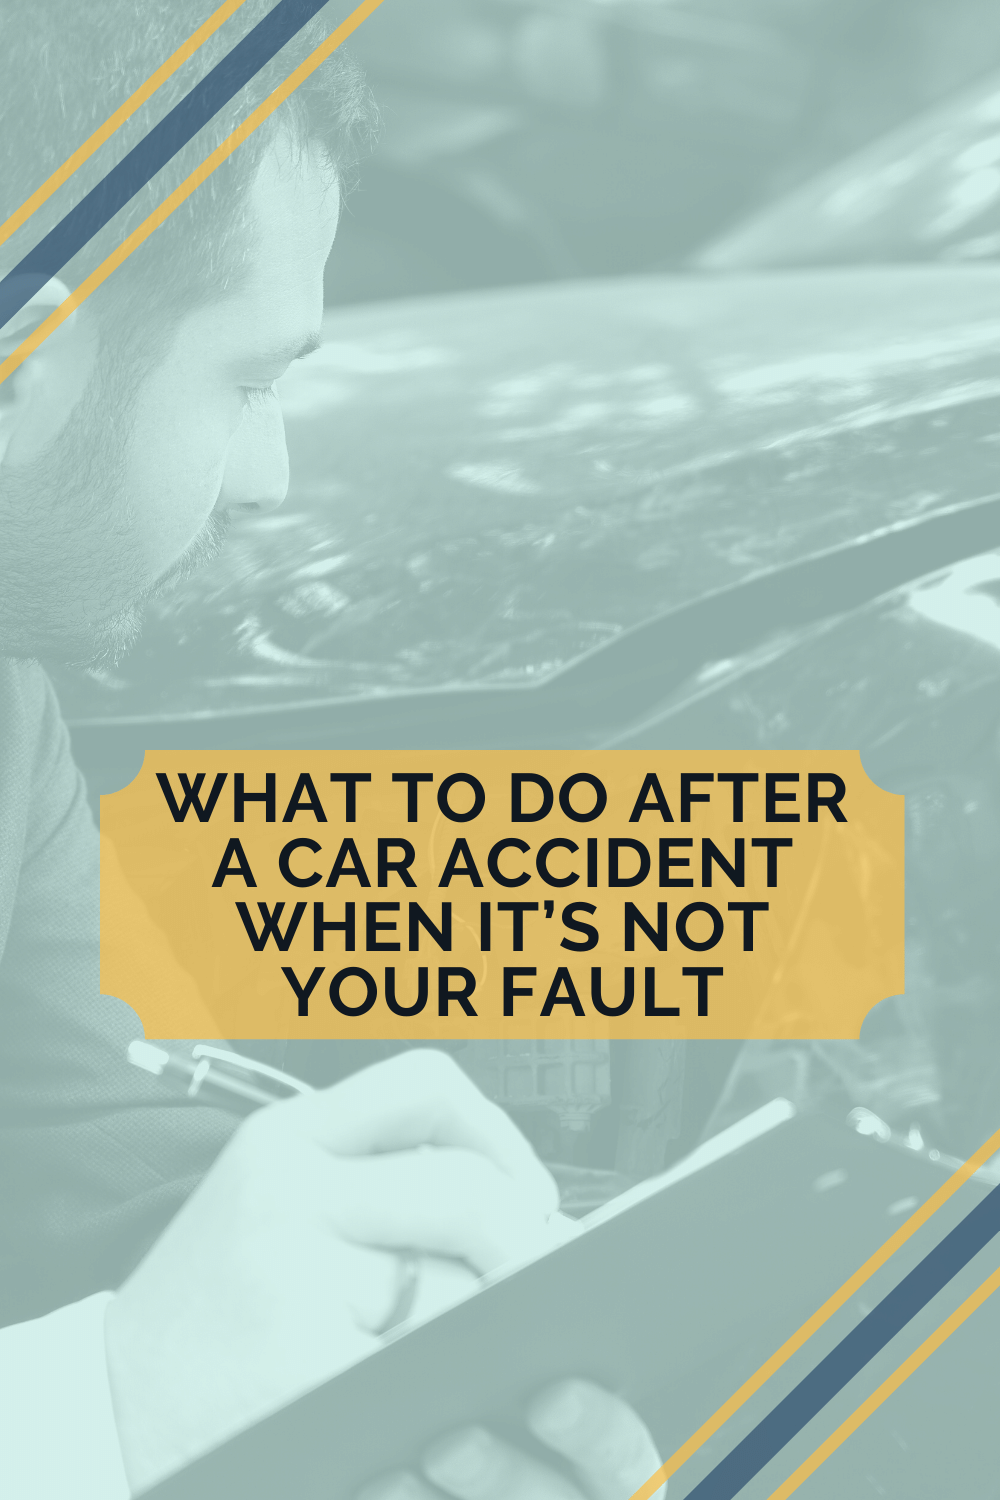 What To Do After A Car Accident When Not Your Fault